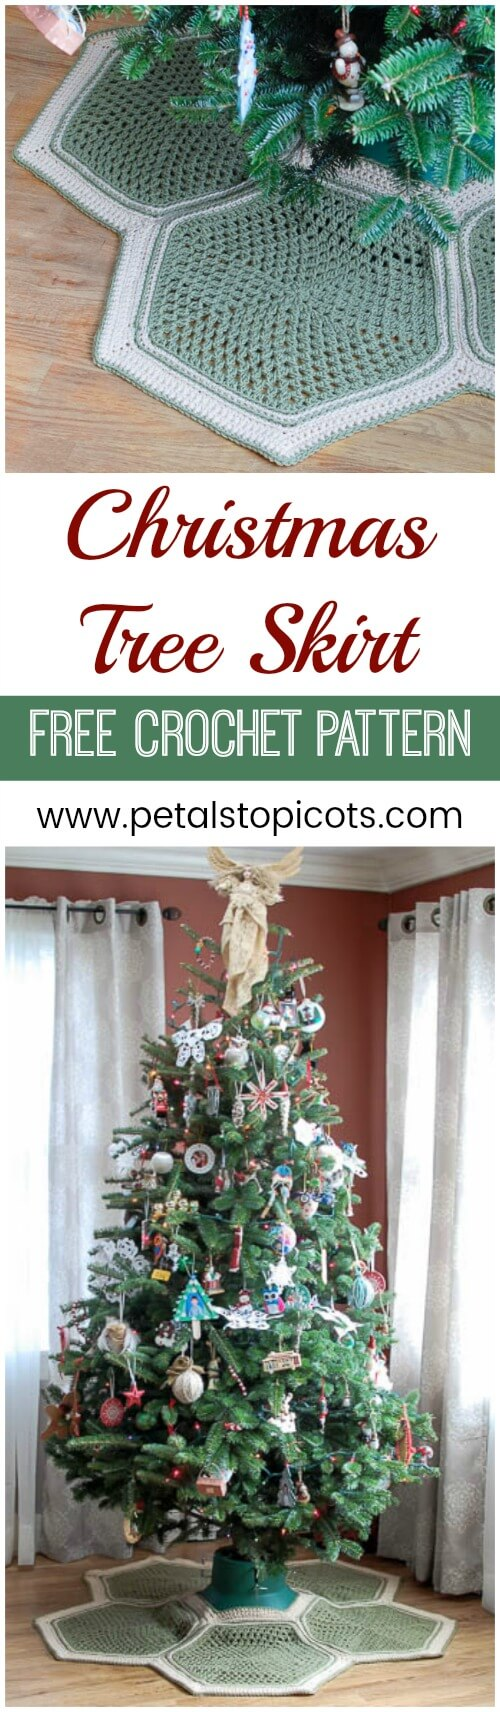 Stitch up this charming crochet tree skirt for your Christmas decor ... a free crochet pattern with lots of diagrams and photos to help guide you through! #petalstopicots